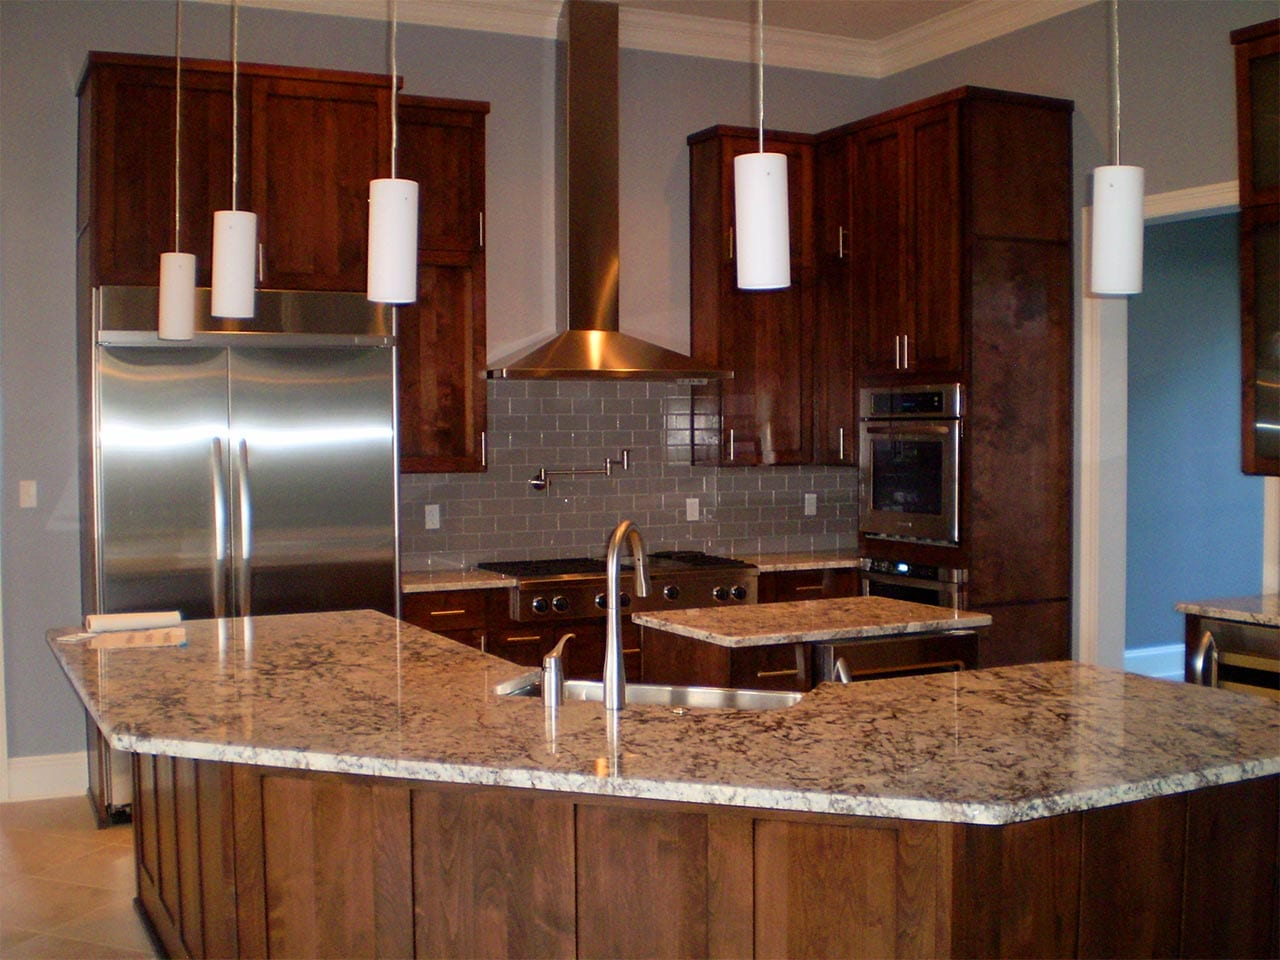 New Construction Kitchen Design